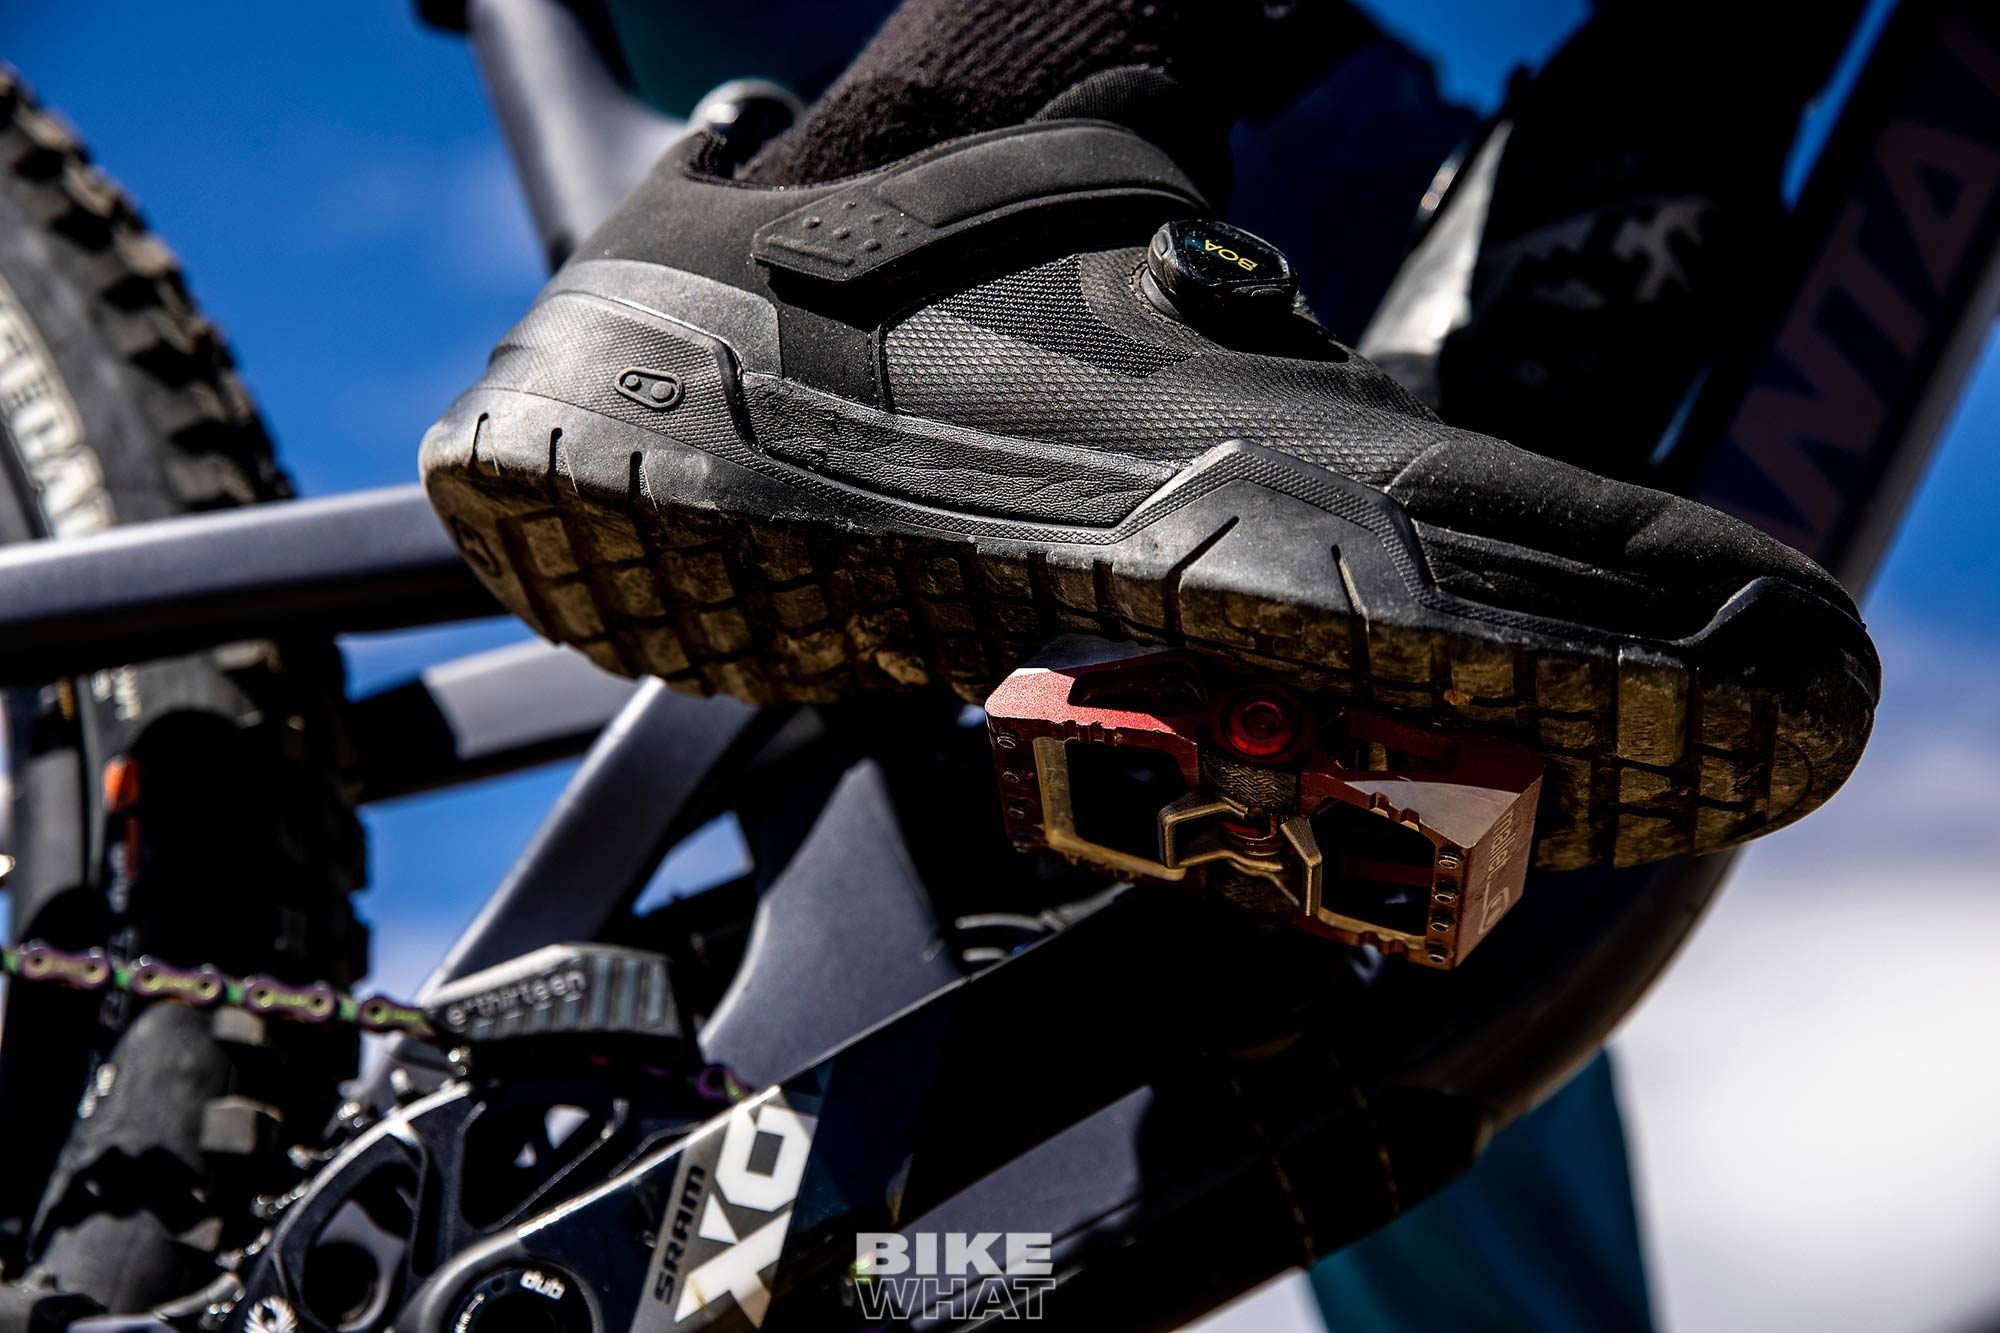 gear_Crankbrothers_shoe_1